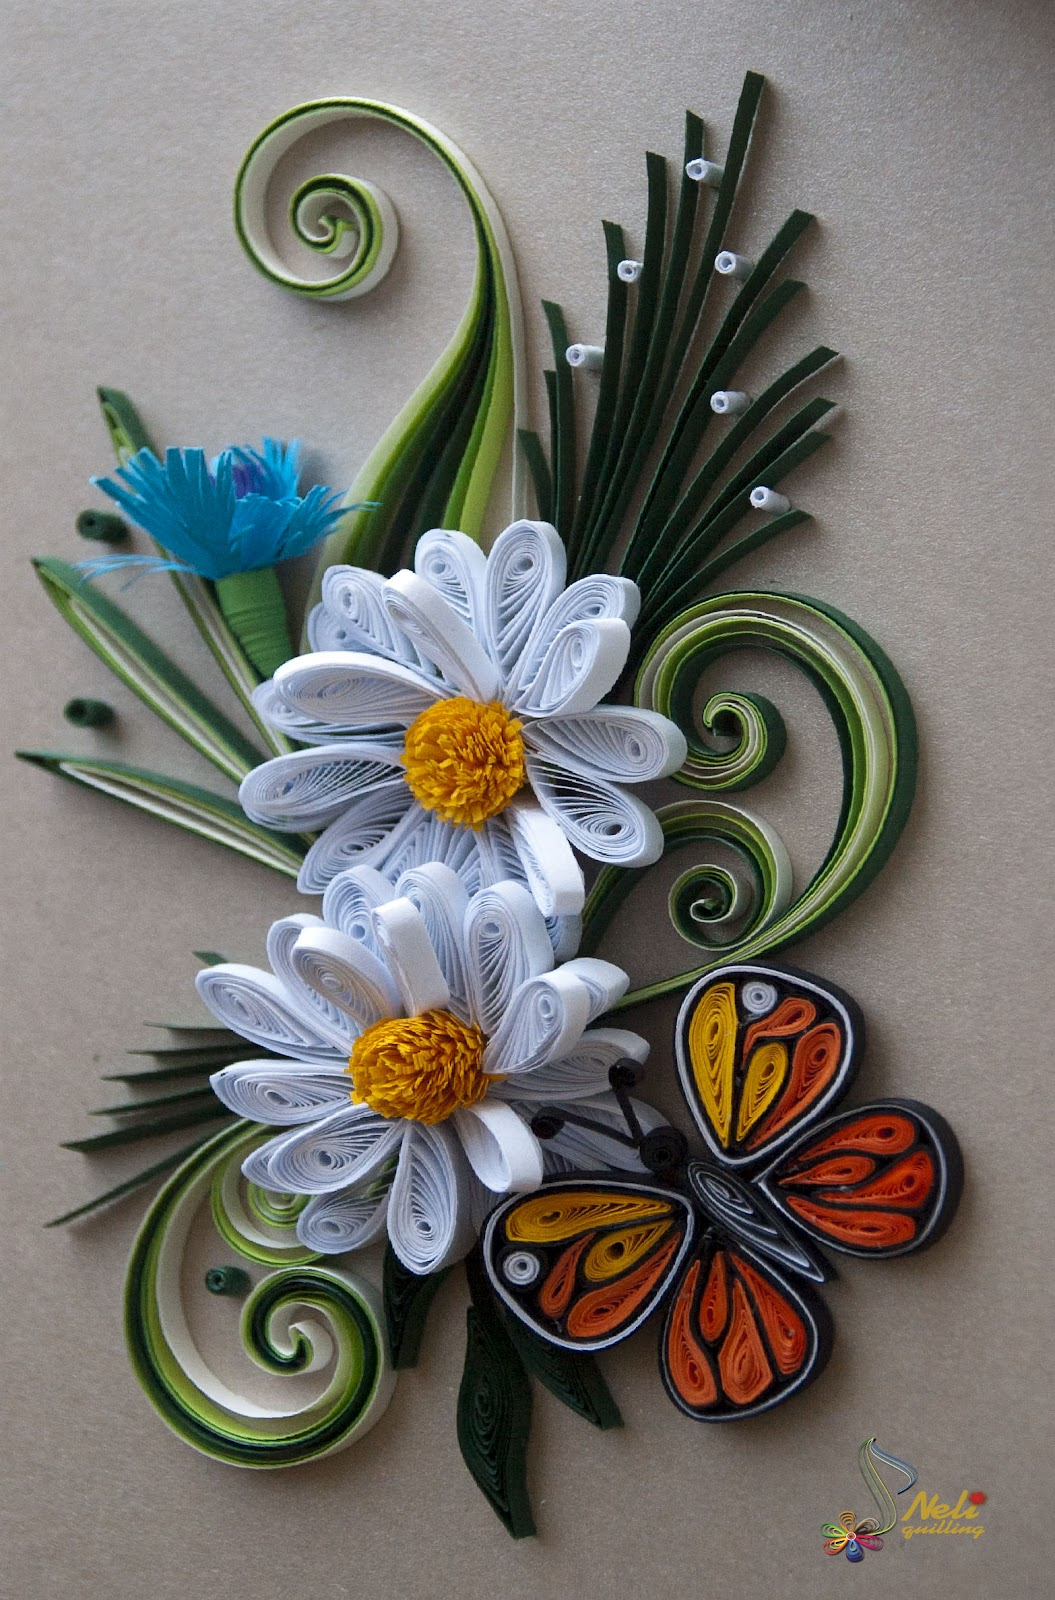 Neli quilling art quilling cards flowers and butterfly for Quilling paper art